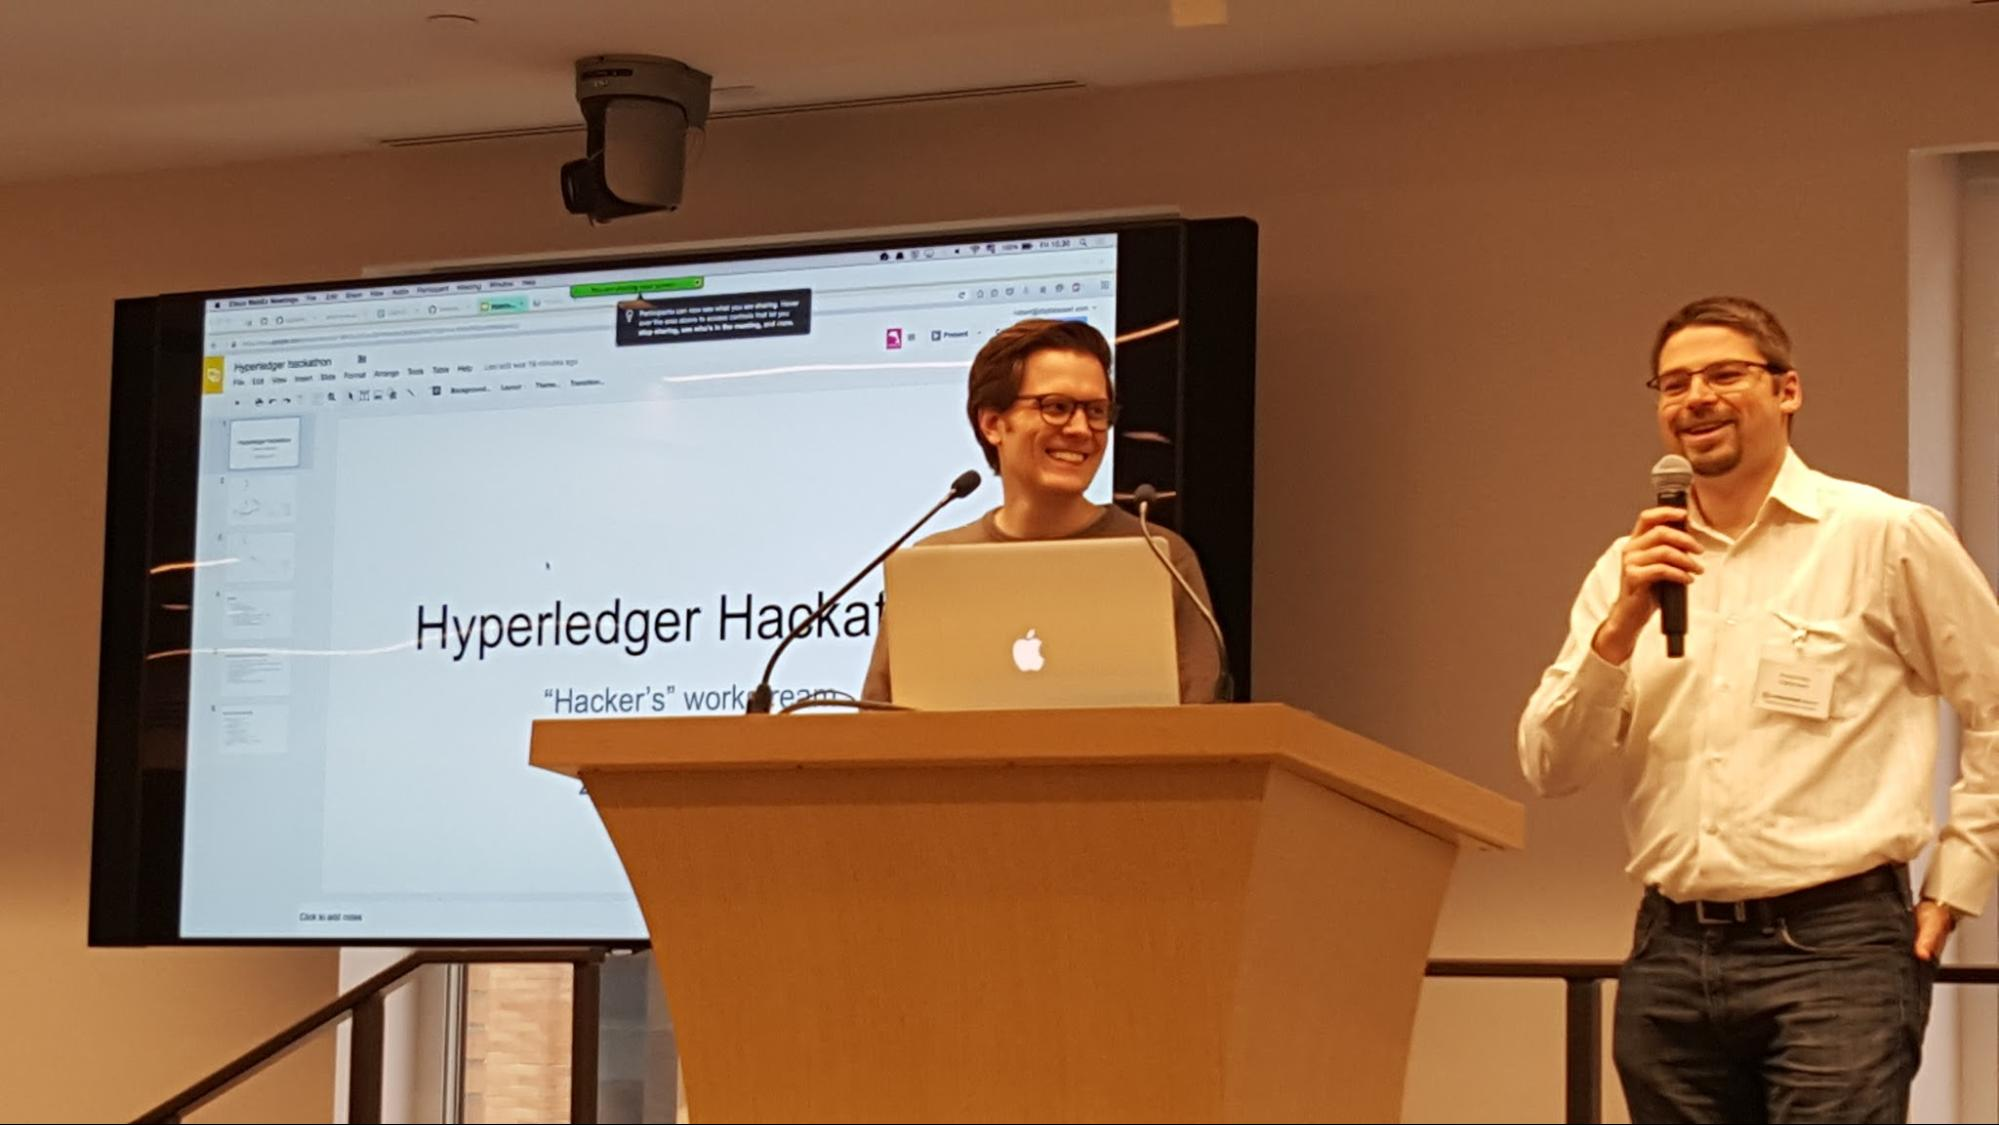 Robert Fajta, DAH (right) and Sheehan Anderson, IBM (left) introduce results of the integration